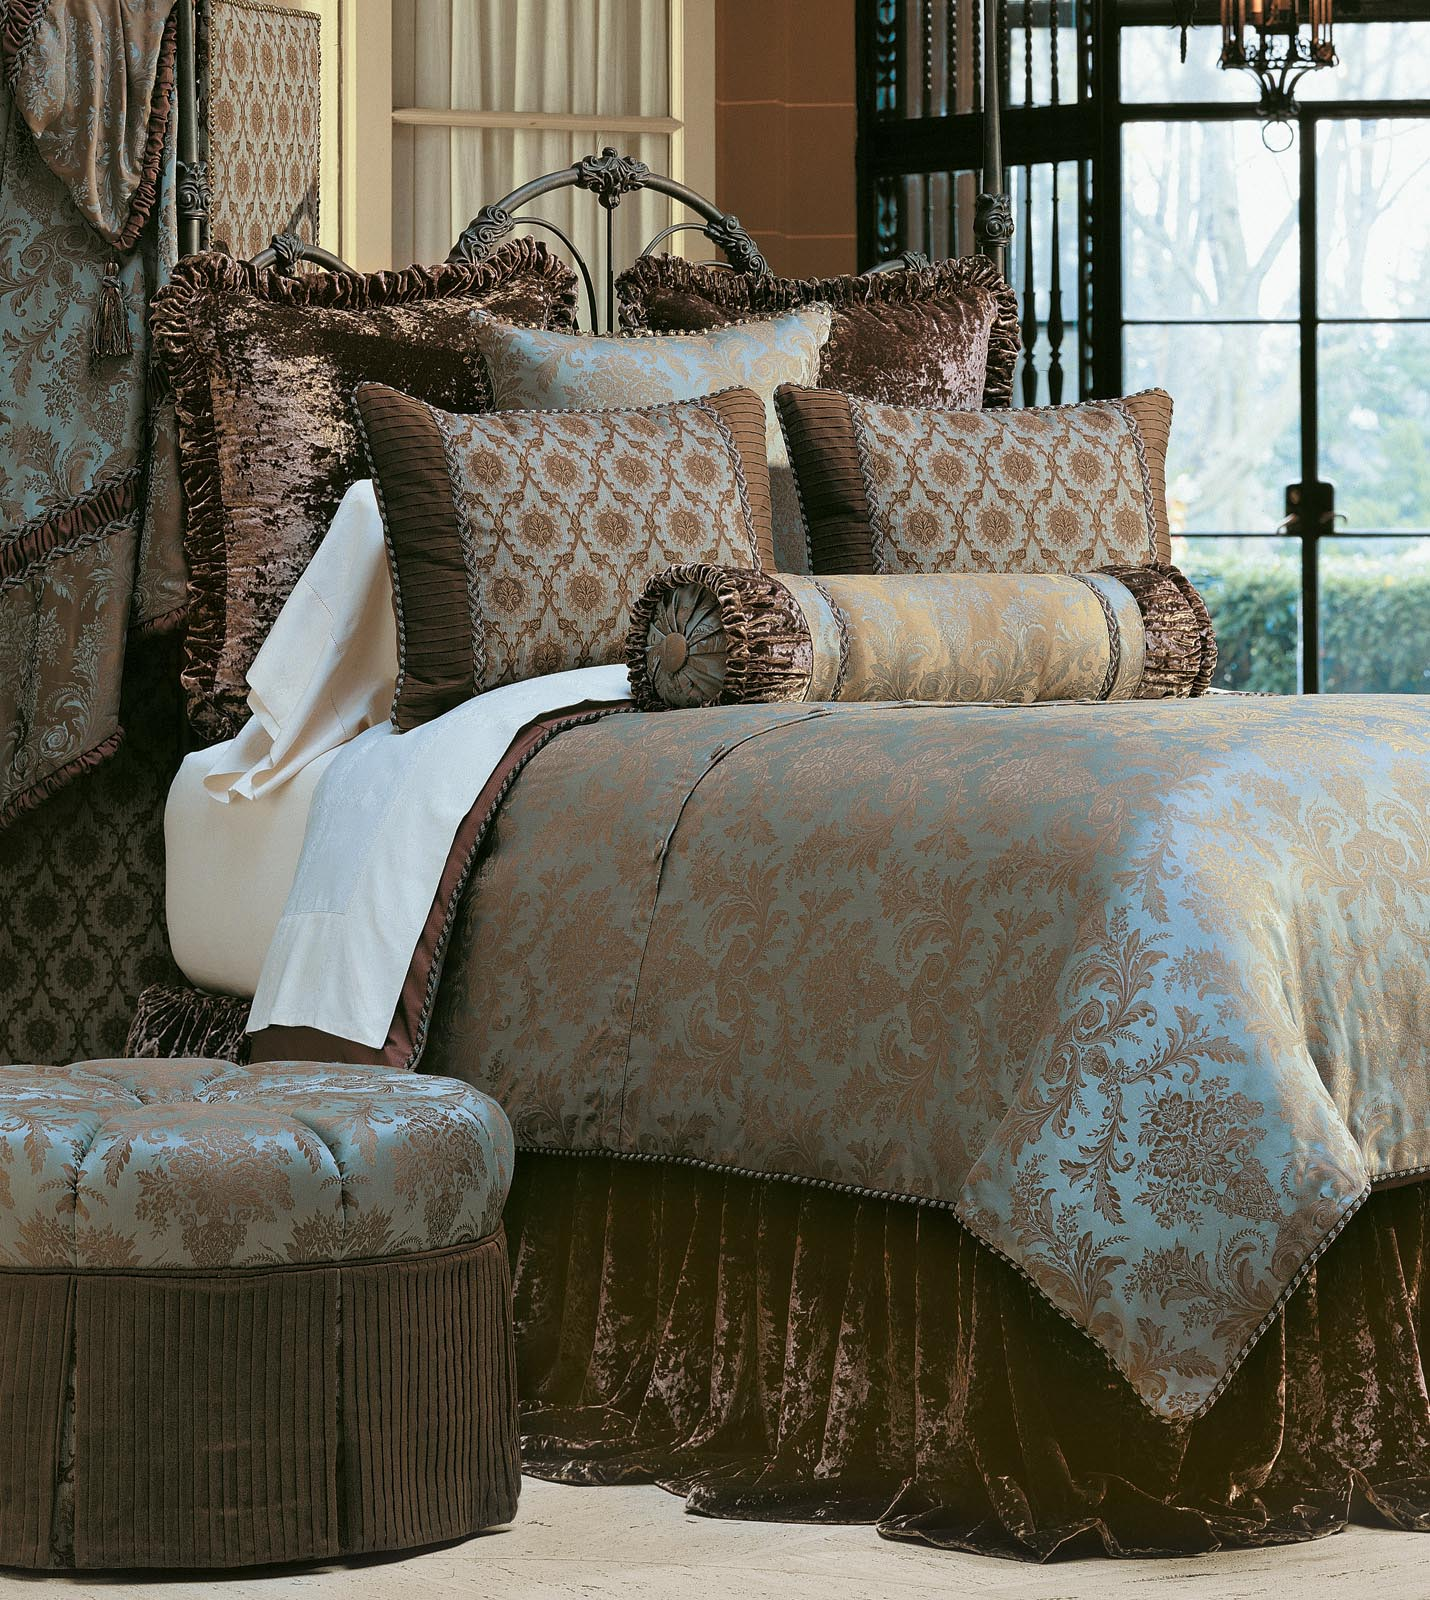 Bedroom Linen Sets: Luxury Bedding By Eastern Accents